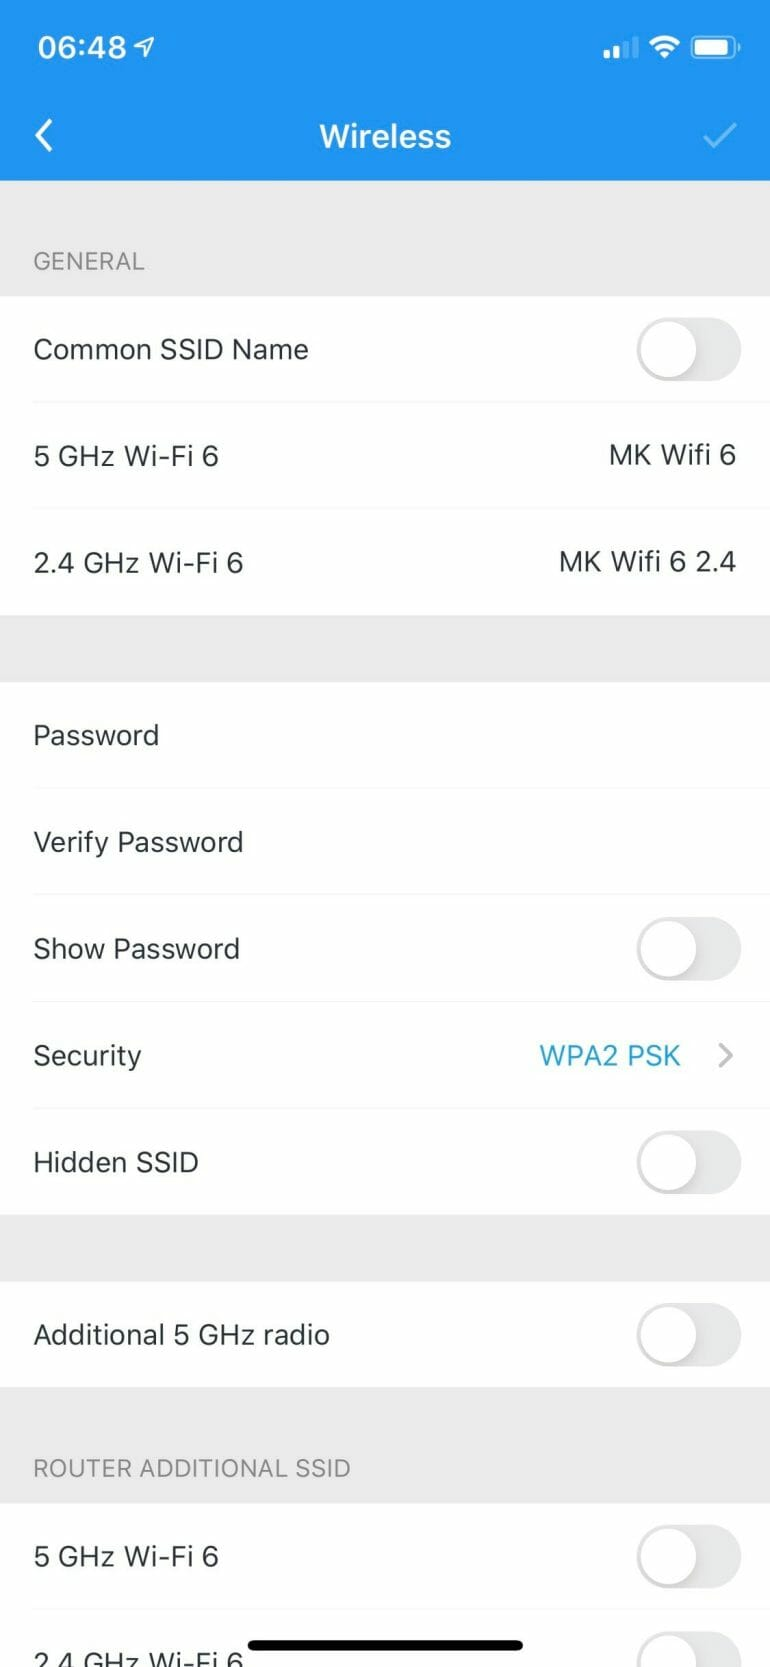 AmpliFi Alien - Wireless Settings